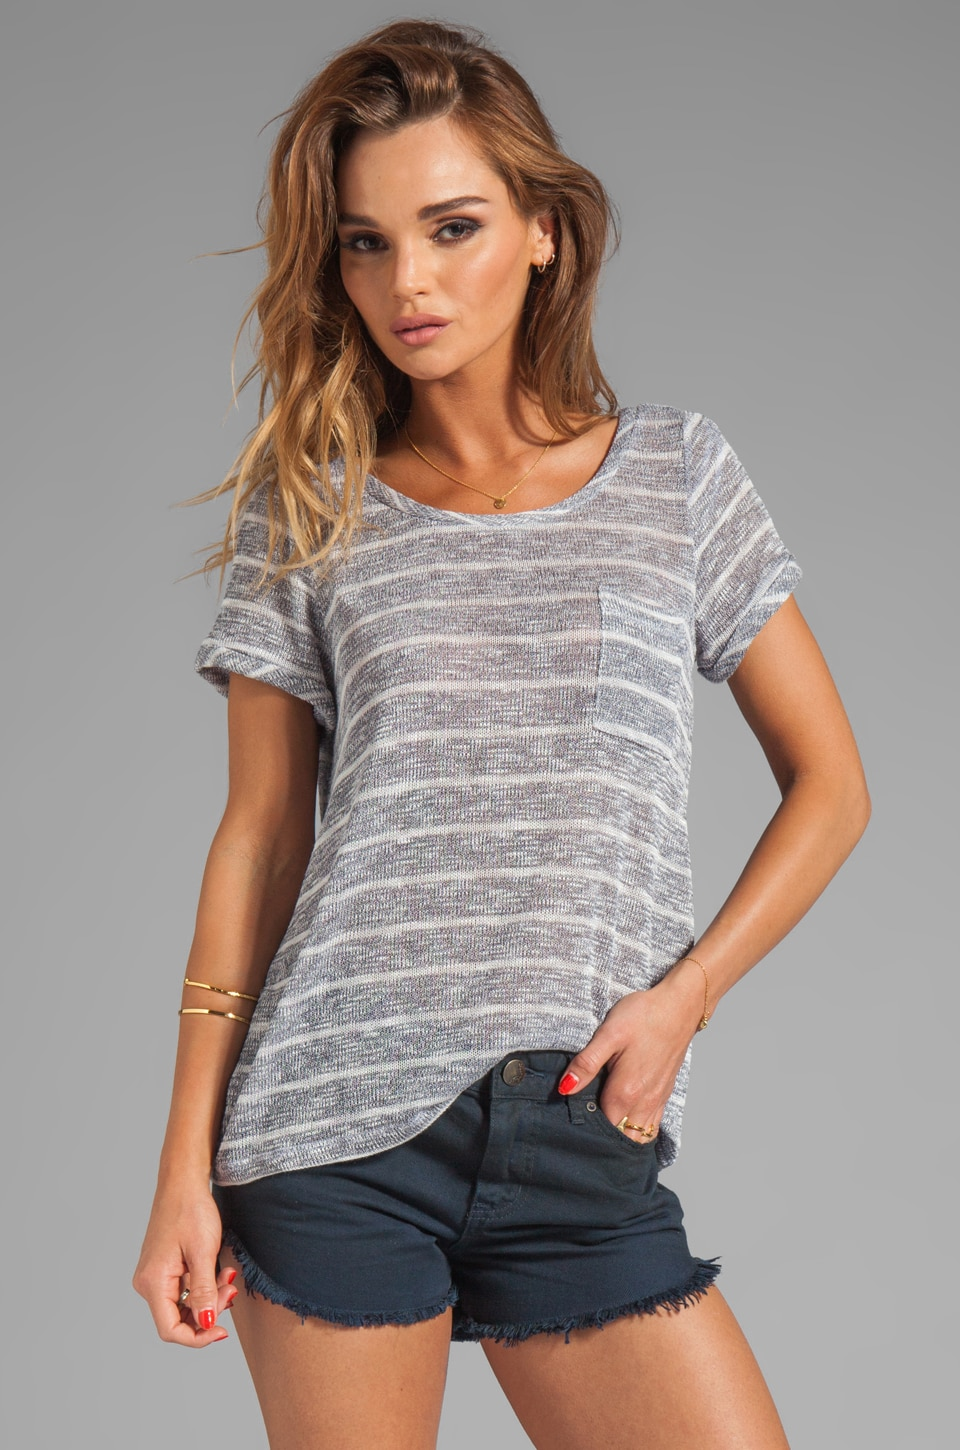 Splendid Caspian Striped Short Sleeve Top in Navy